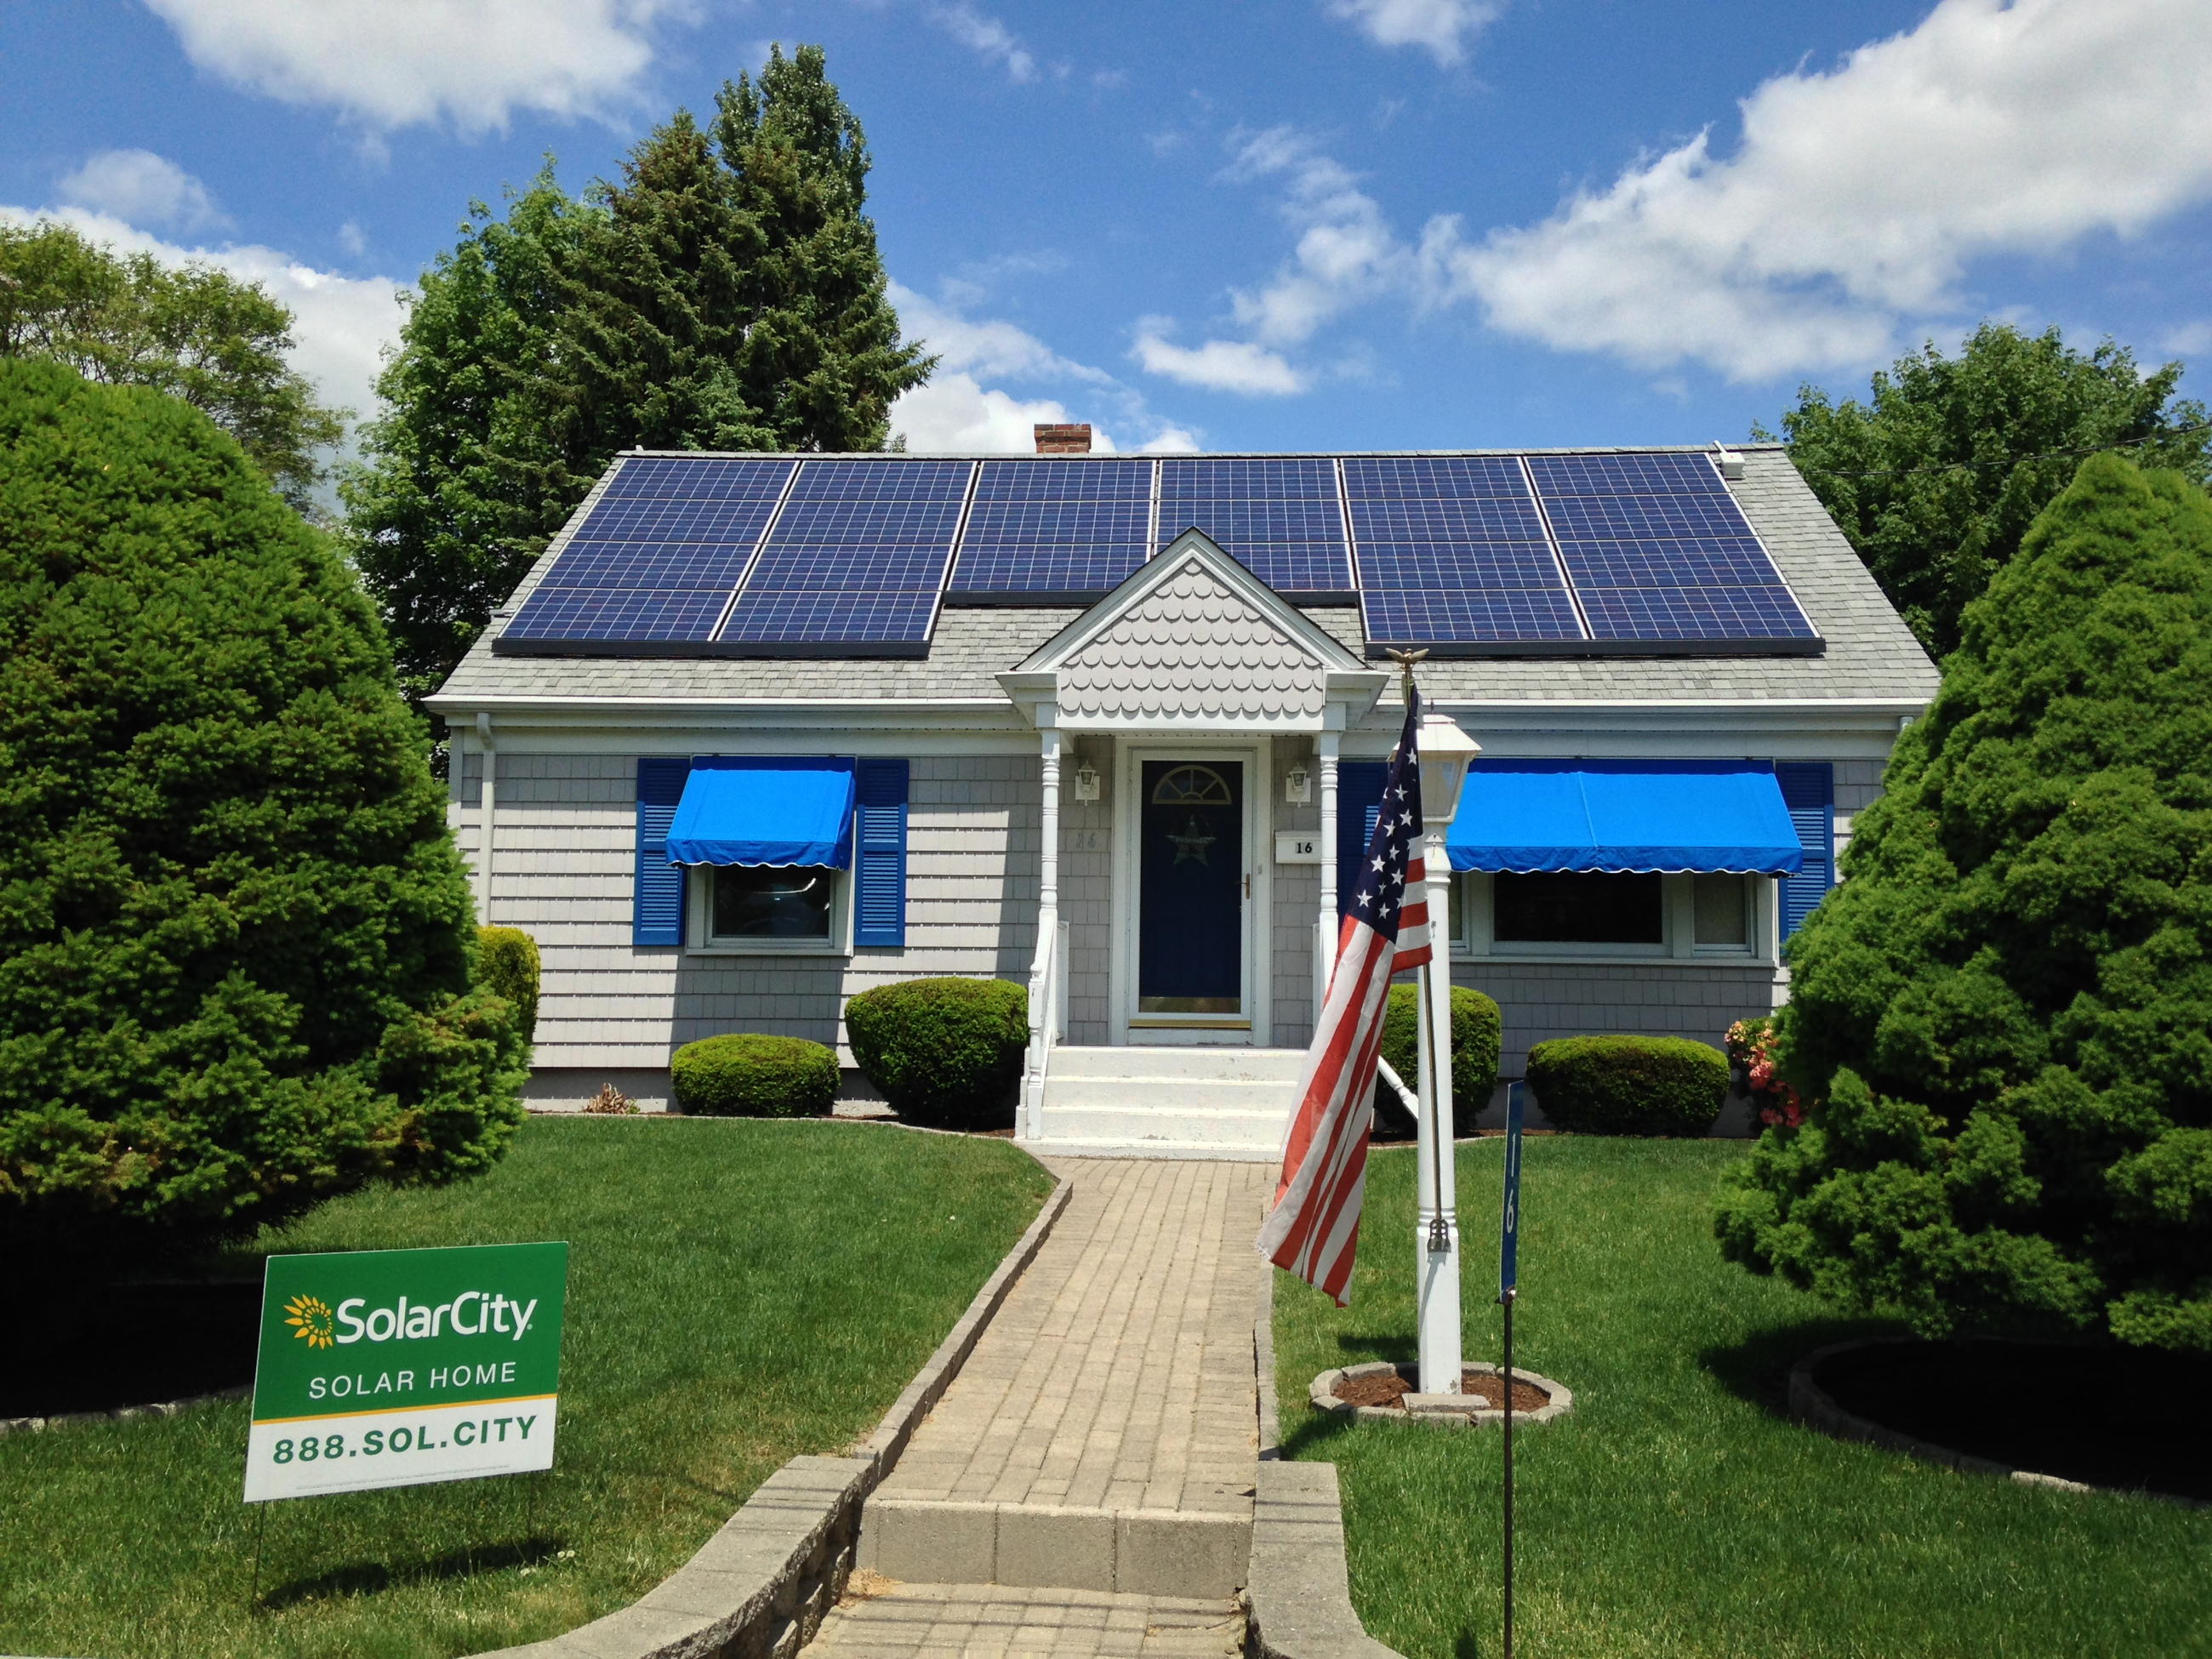 SolarCity_MA With the installation and generation costs falling, Solar City, the largest solar company in the United States, is expanding to the Pittsburgh area.